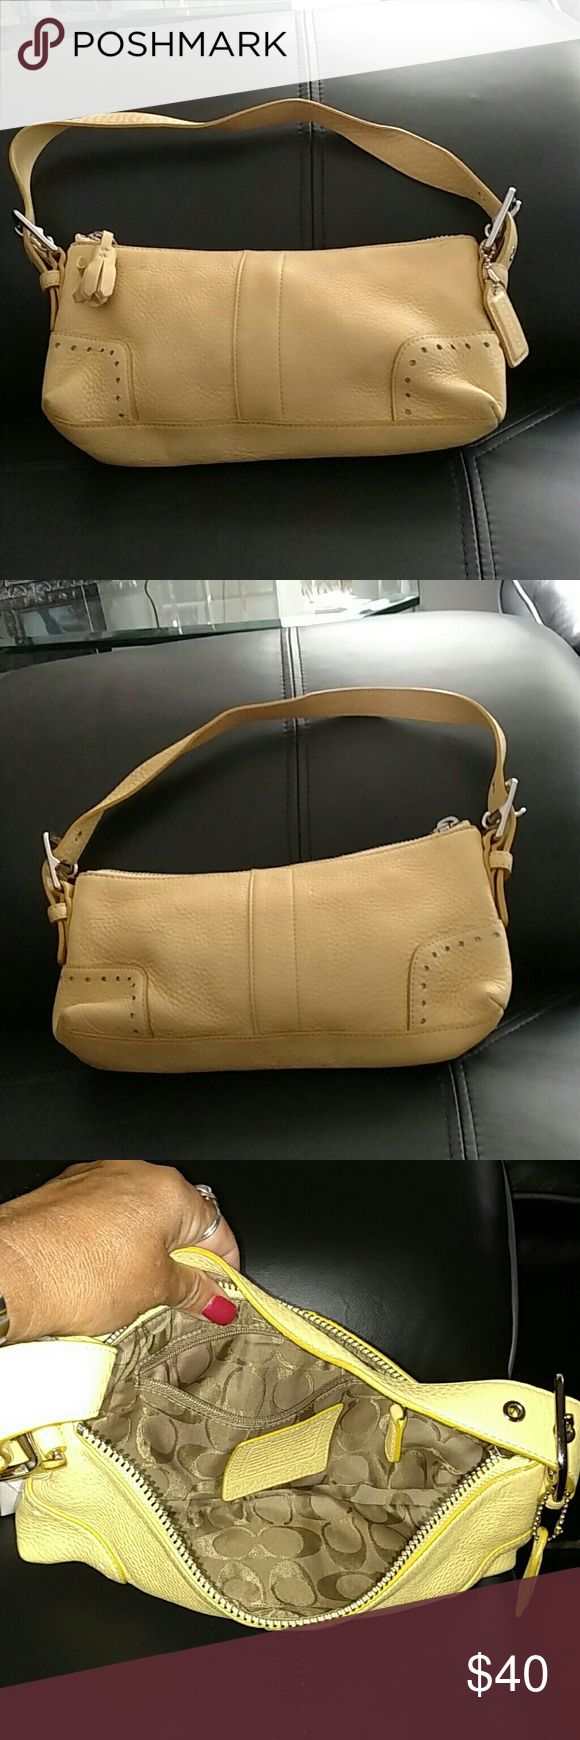 Authentic small yellow coach purse .. price firm i love this coach bag had it for a year. Never used. It's in excellent condition. With silver hard wear.. Coach Bags Mini Bags